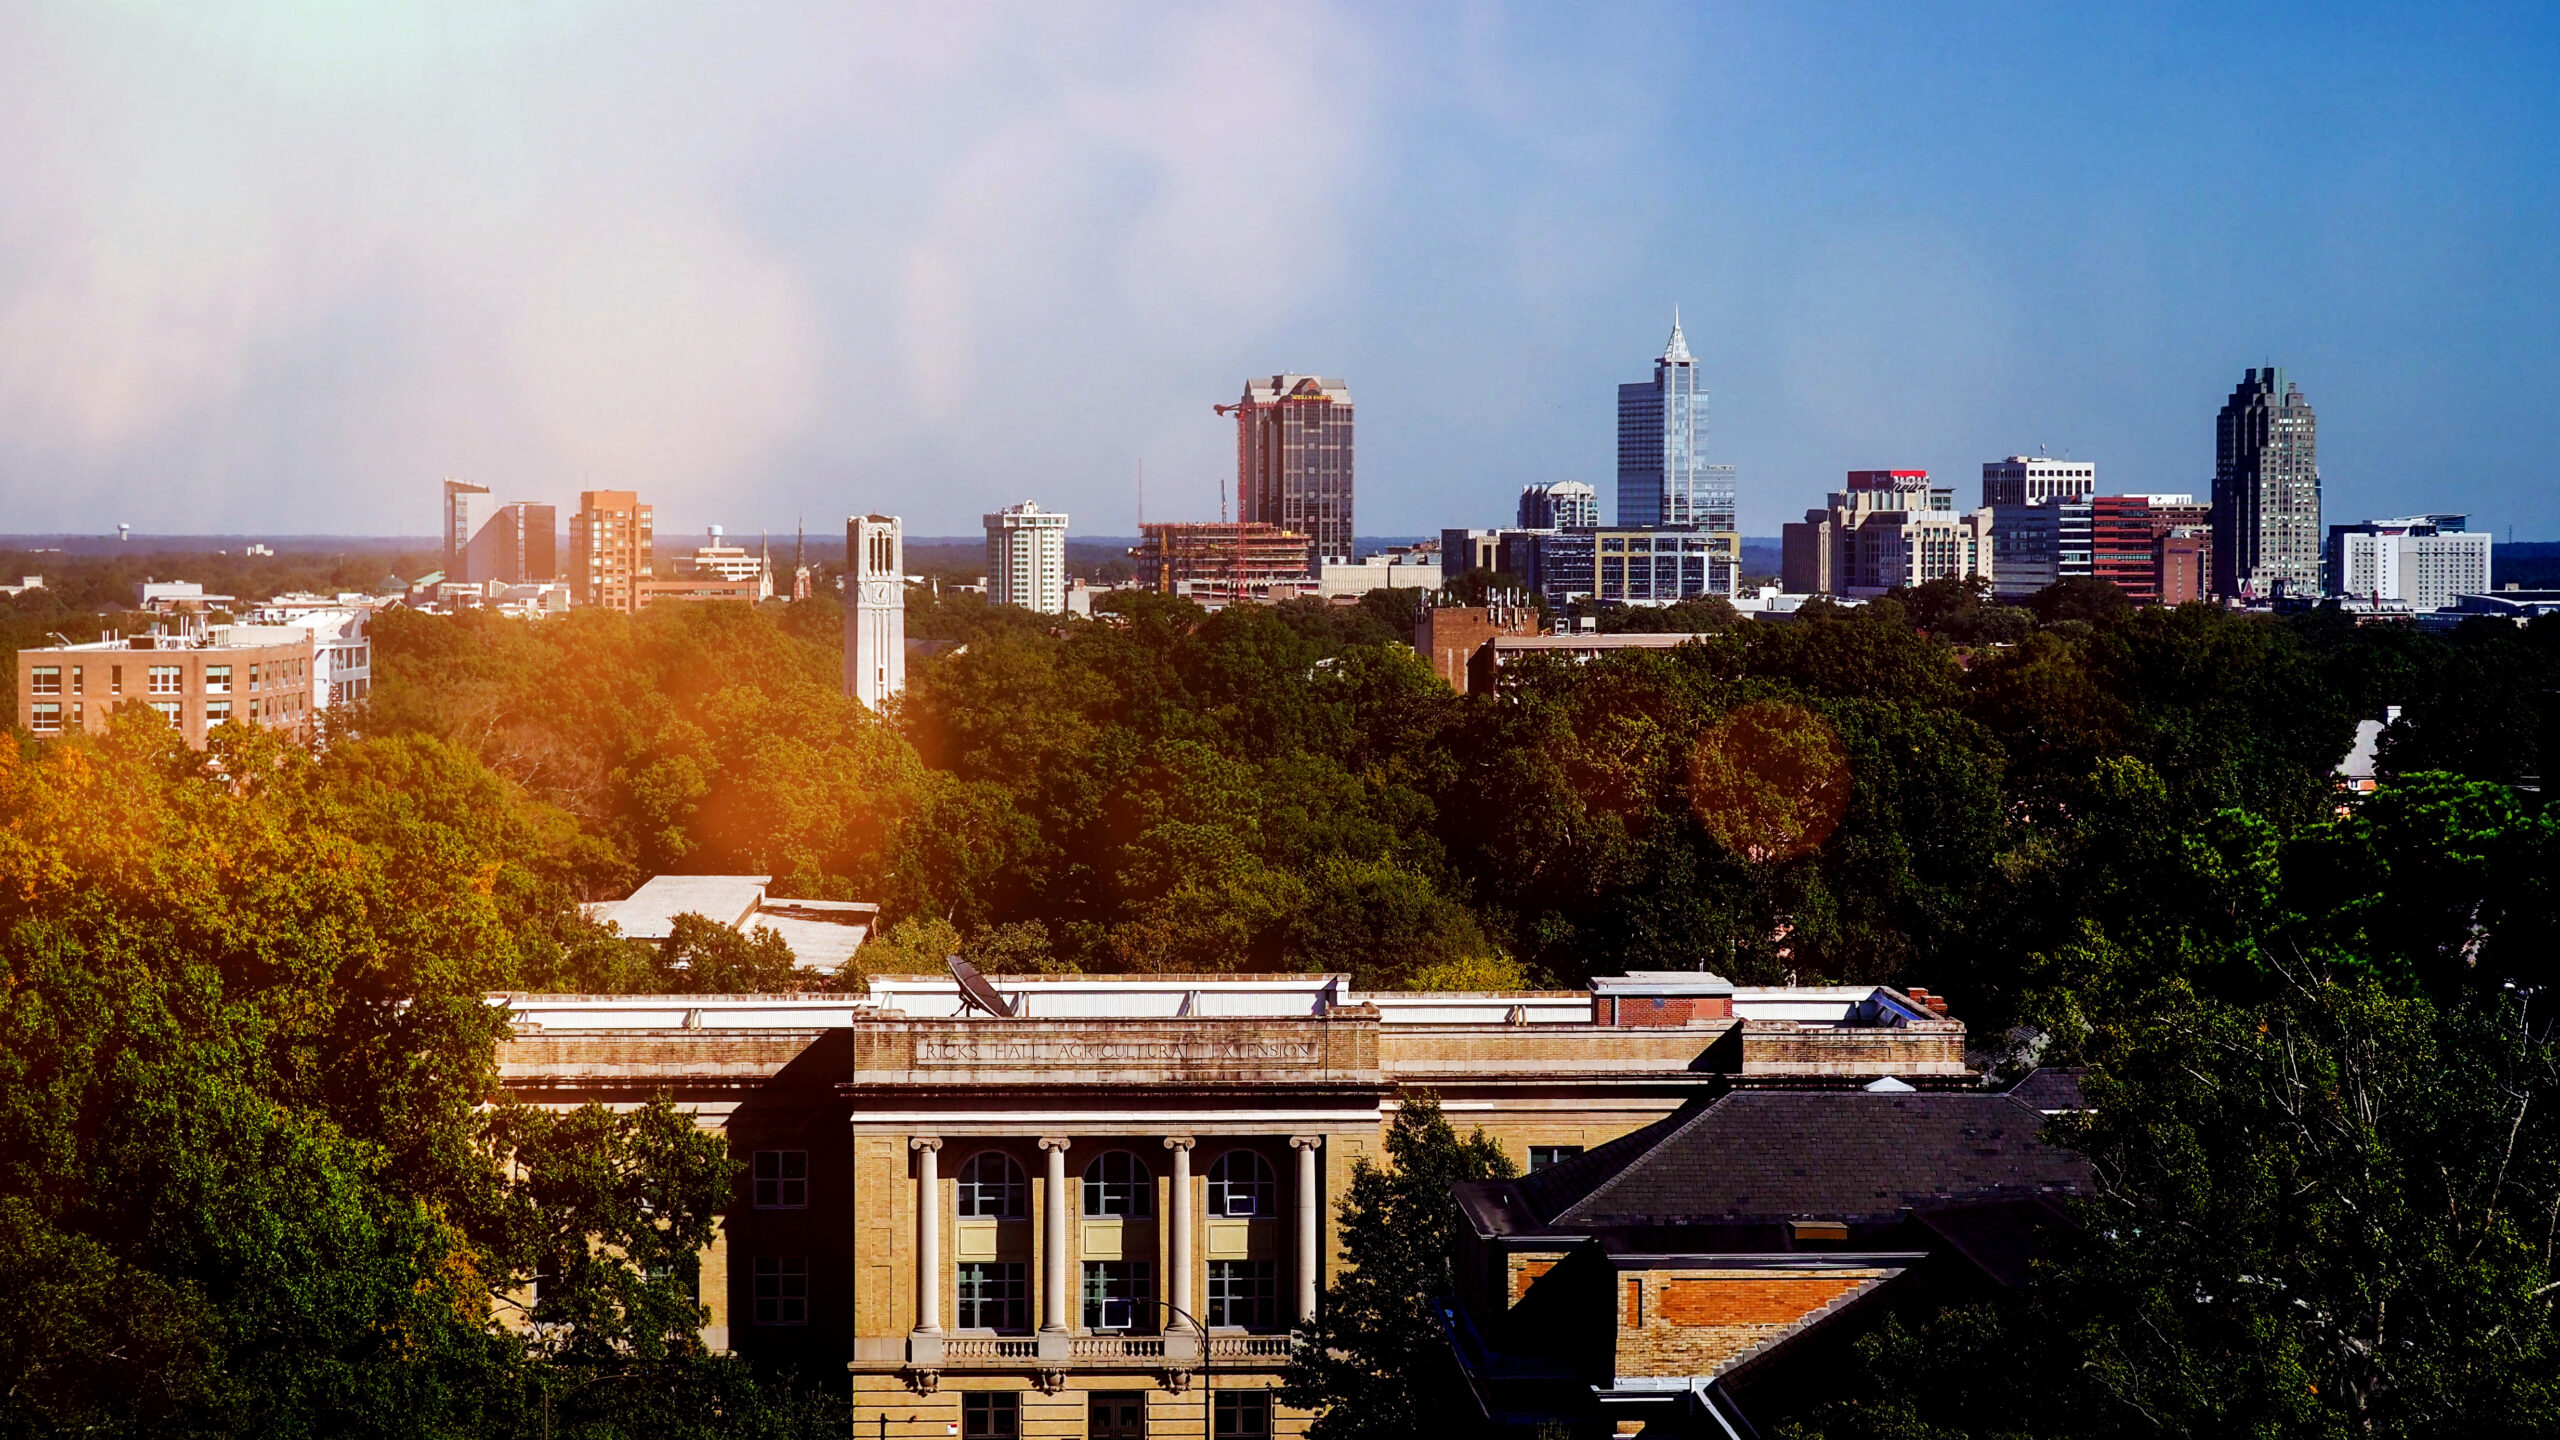 Ricks Hall (in the foreground) and the Belltower on NC State's campus, with downtown Raleigh behind.